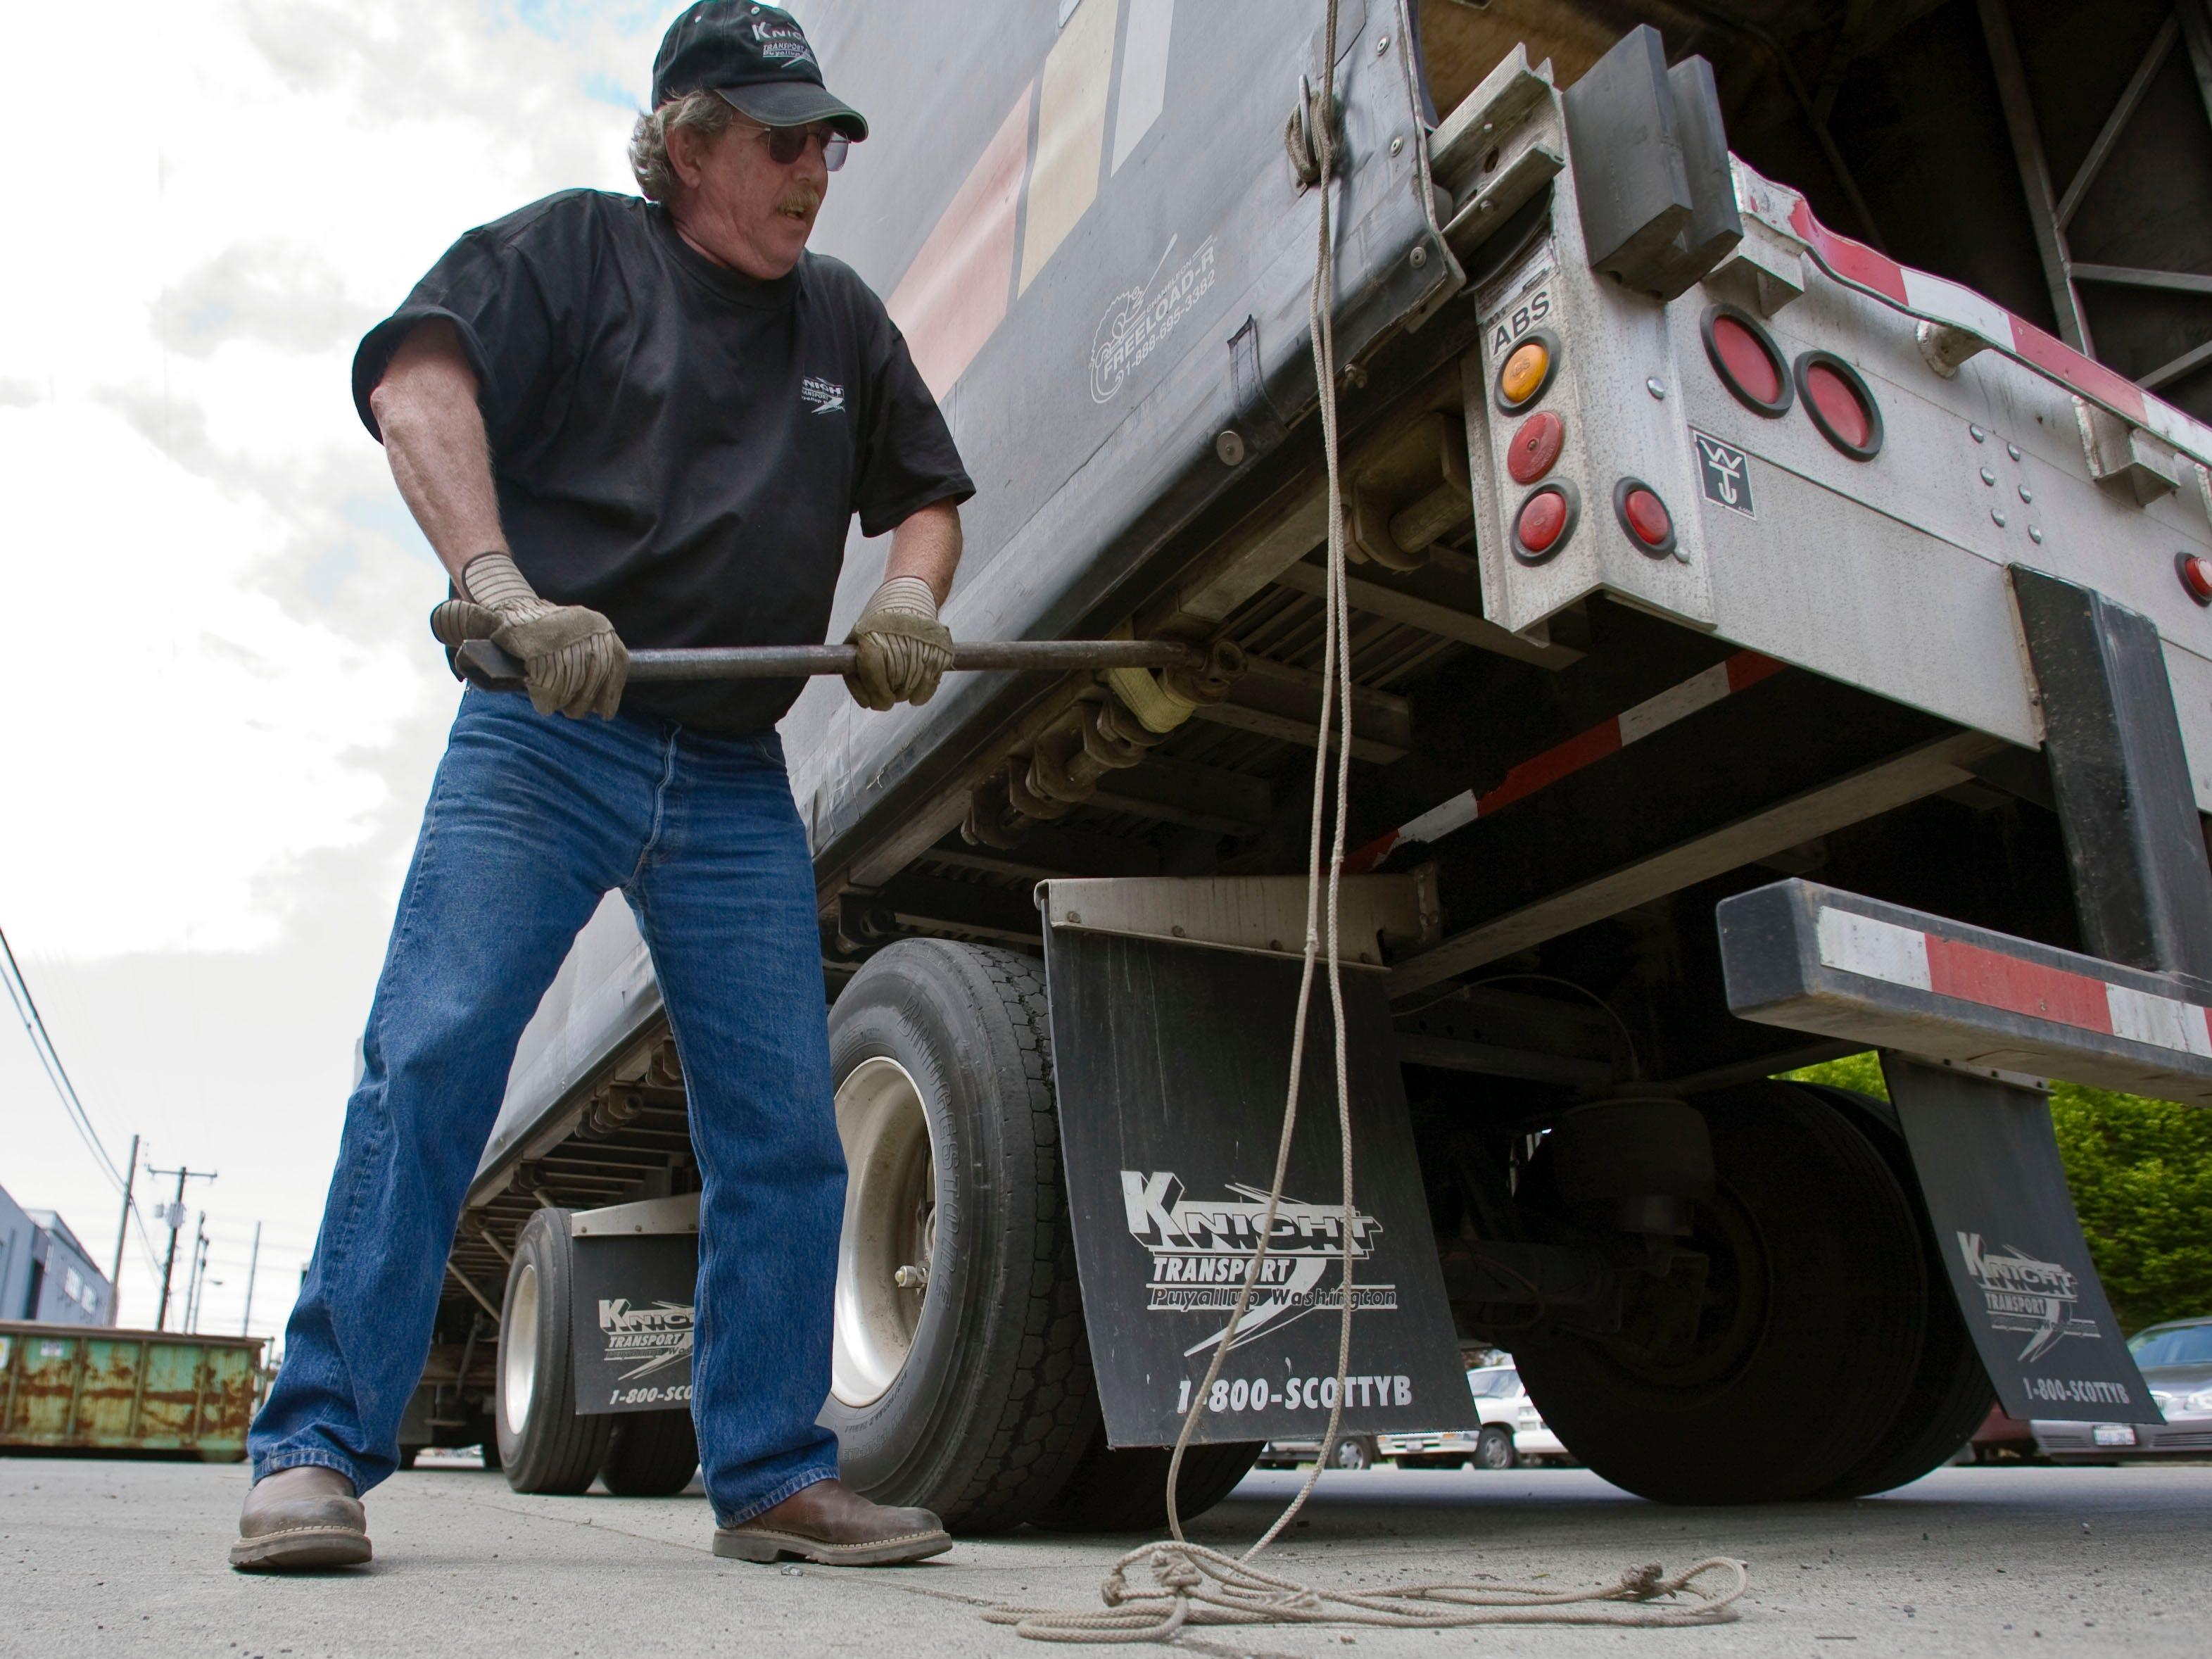 An American trucking giant is slated to declare bankruptcy — and it may leave more than 3,200 truck drivers stranded and jobless